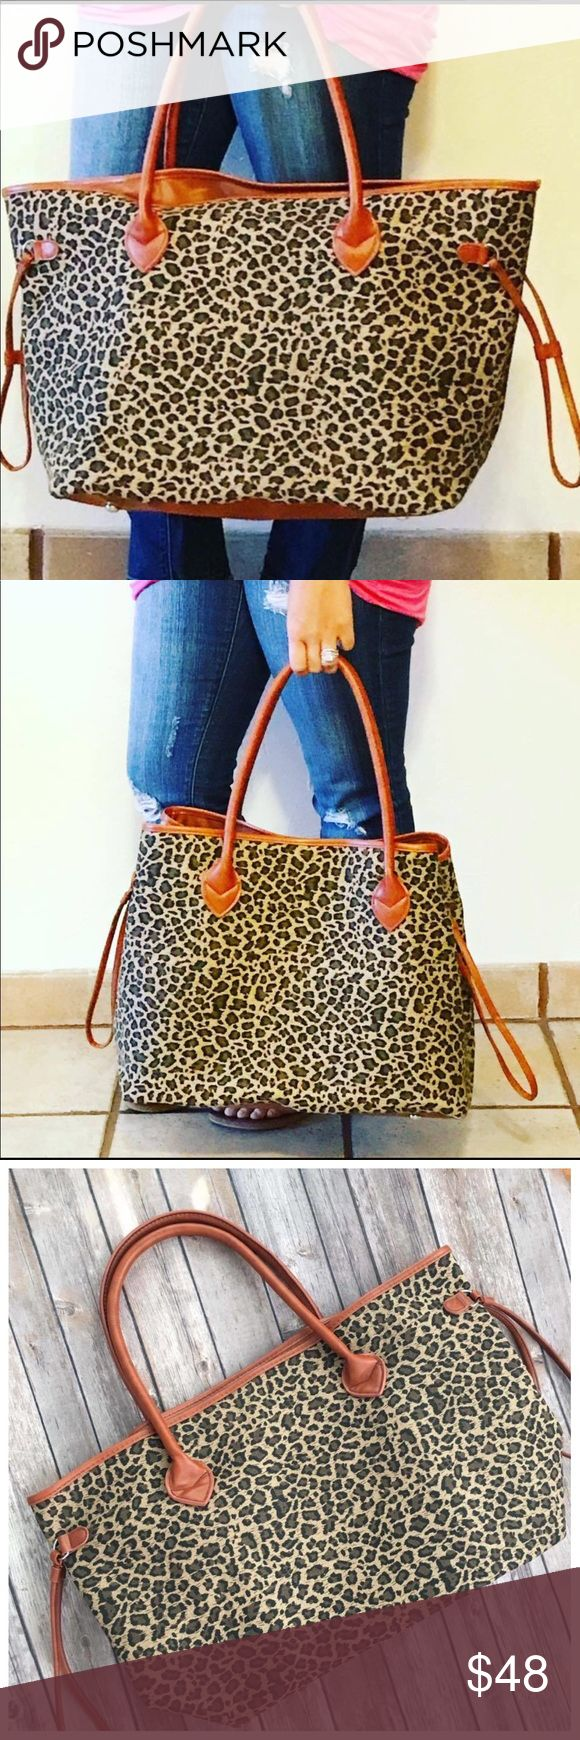 << Large Leopard Print Tote Bag Purse >> The cutest bag for the season! Large enough to carry everything you need! Huge and cute! Snaps on sides as shown in picture two. Big open inside. Bags